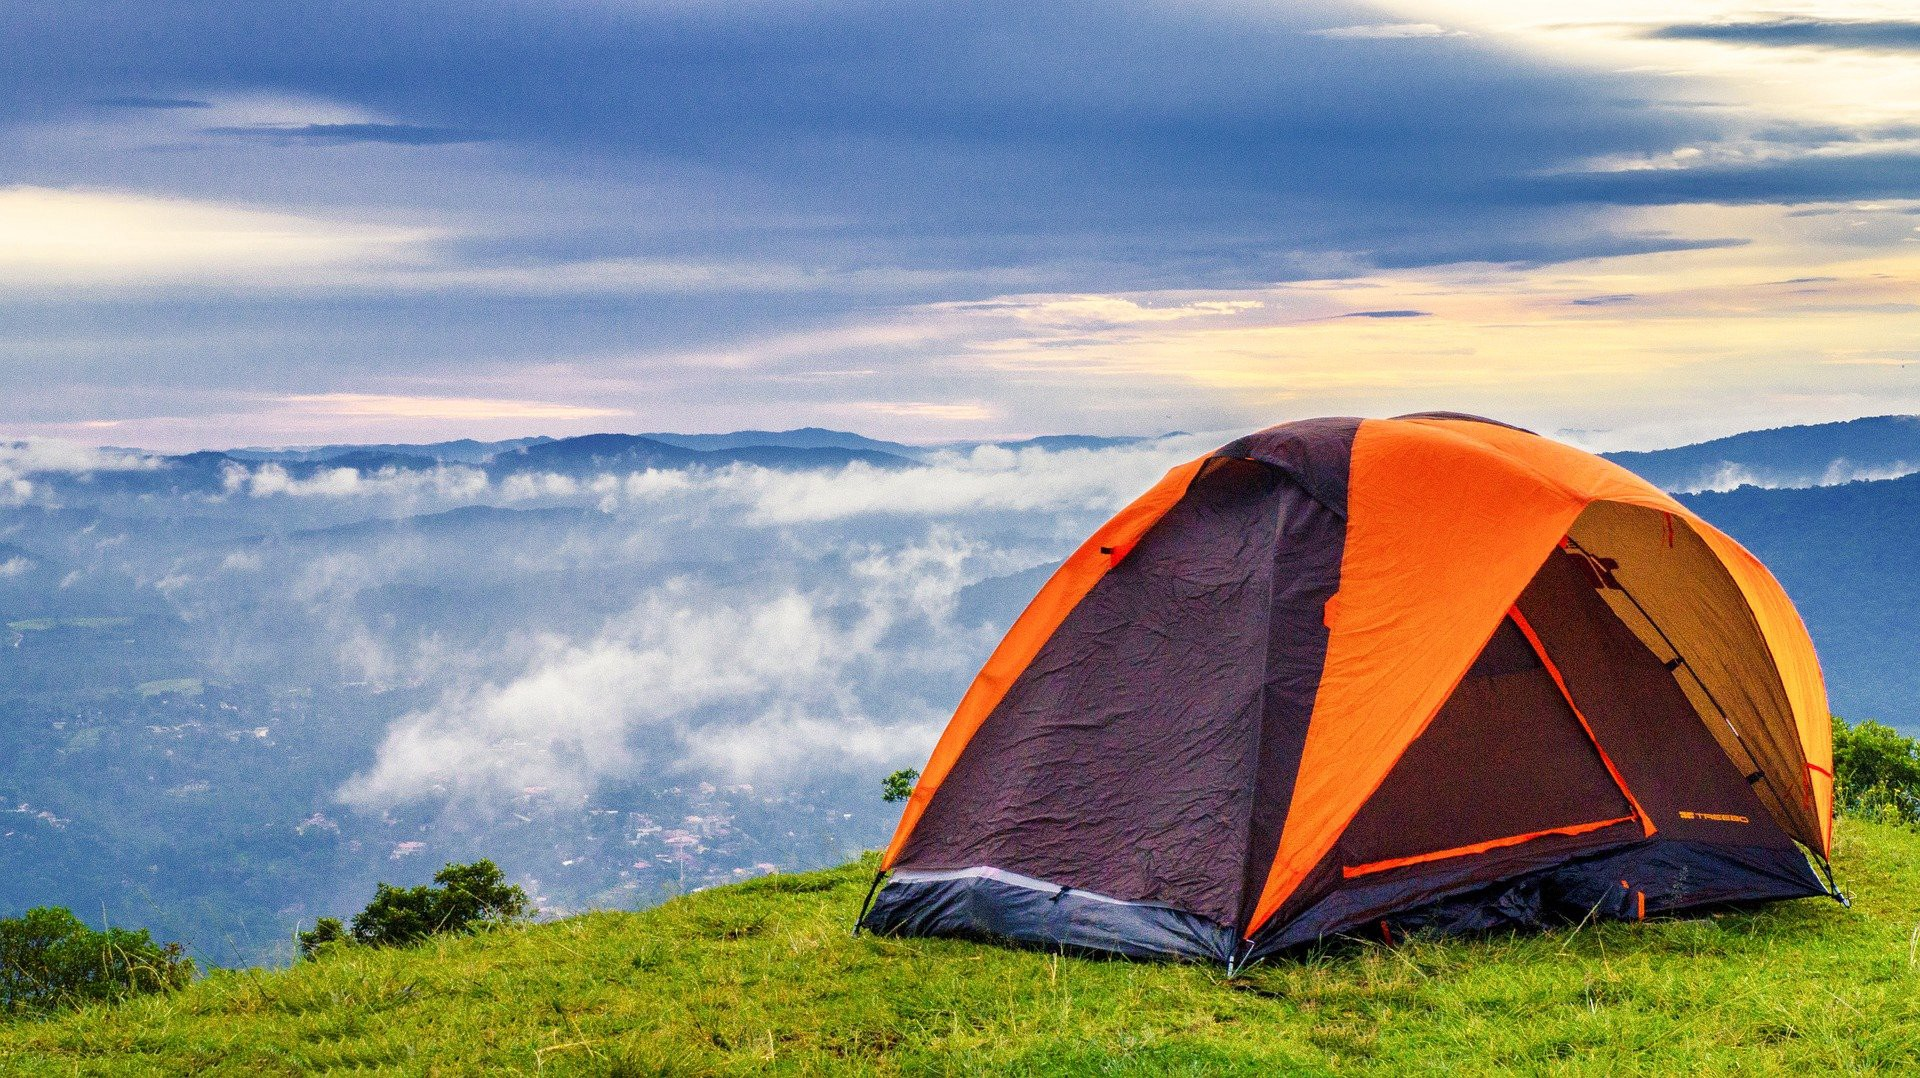 Forget This Screen—The Real World Is Out There—Tenting on hills